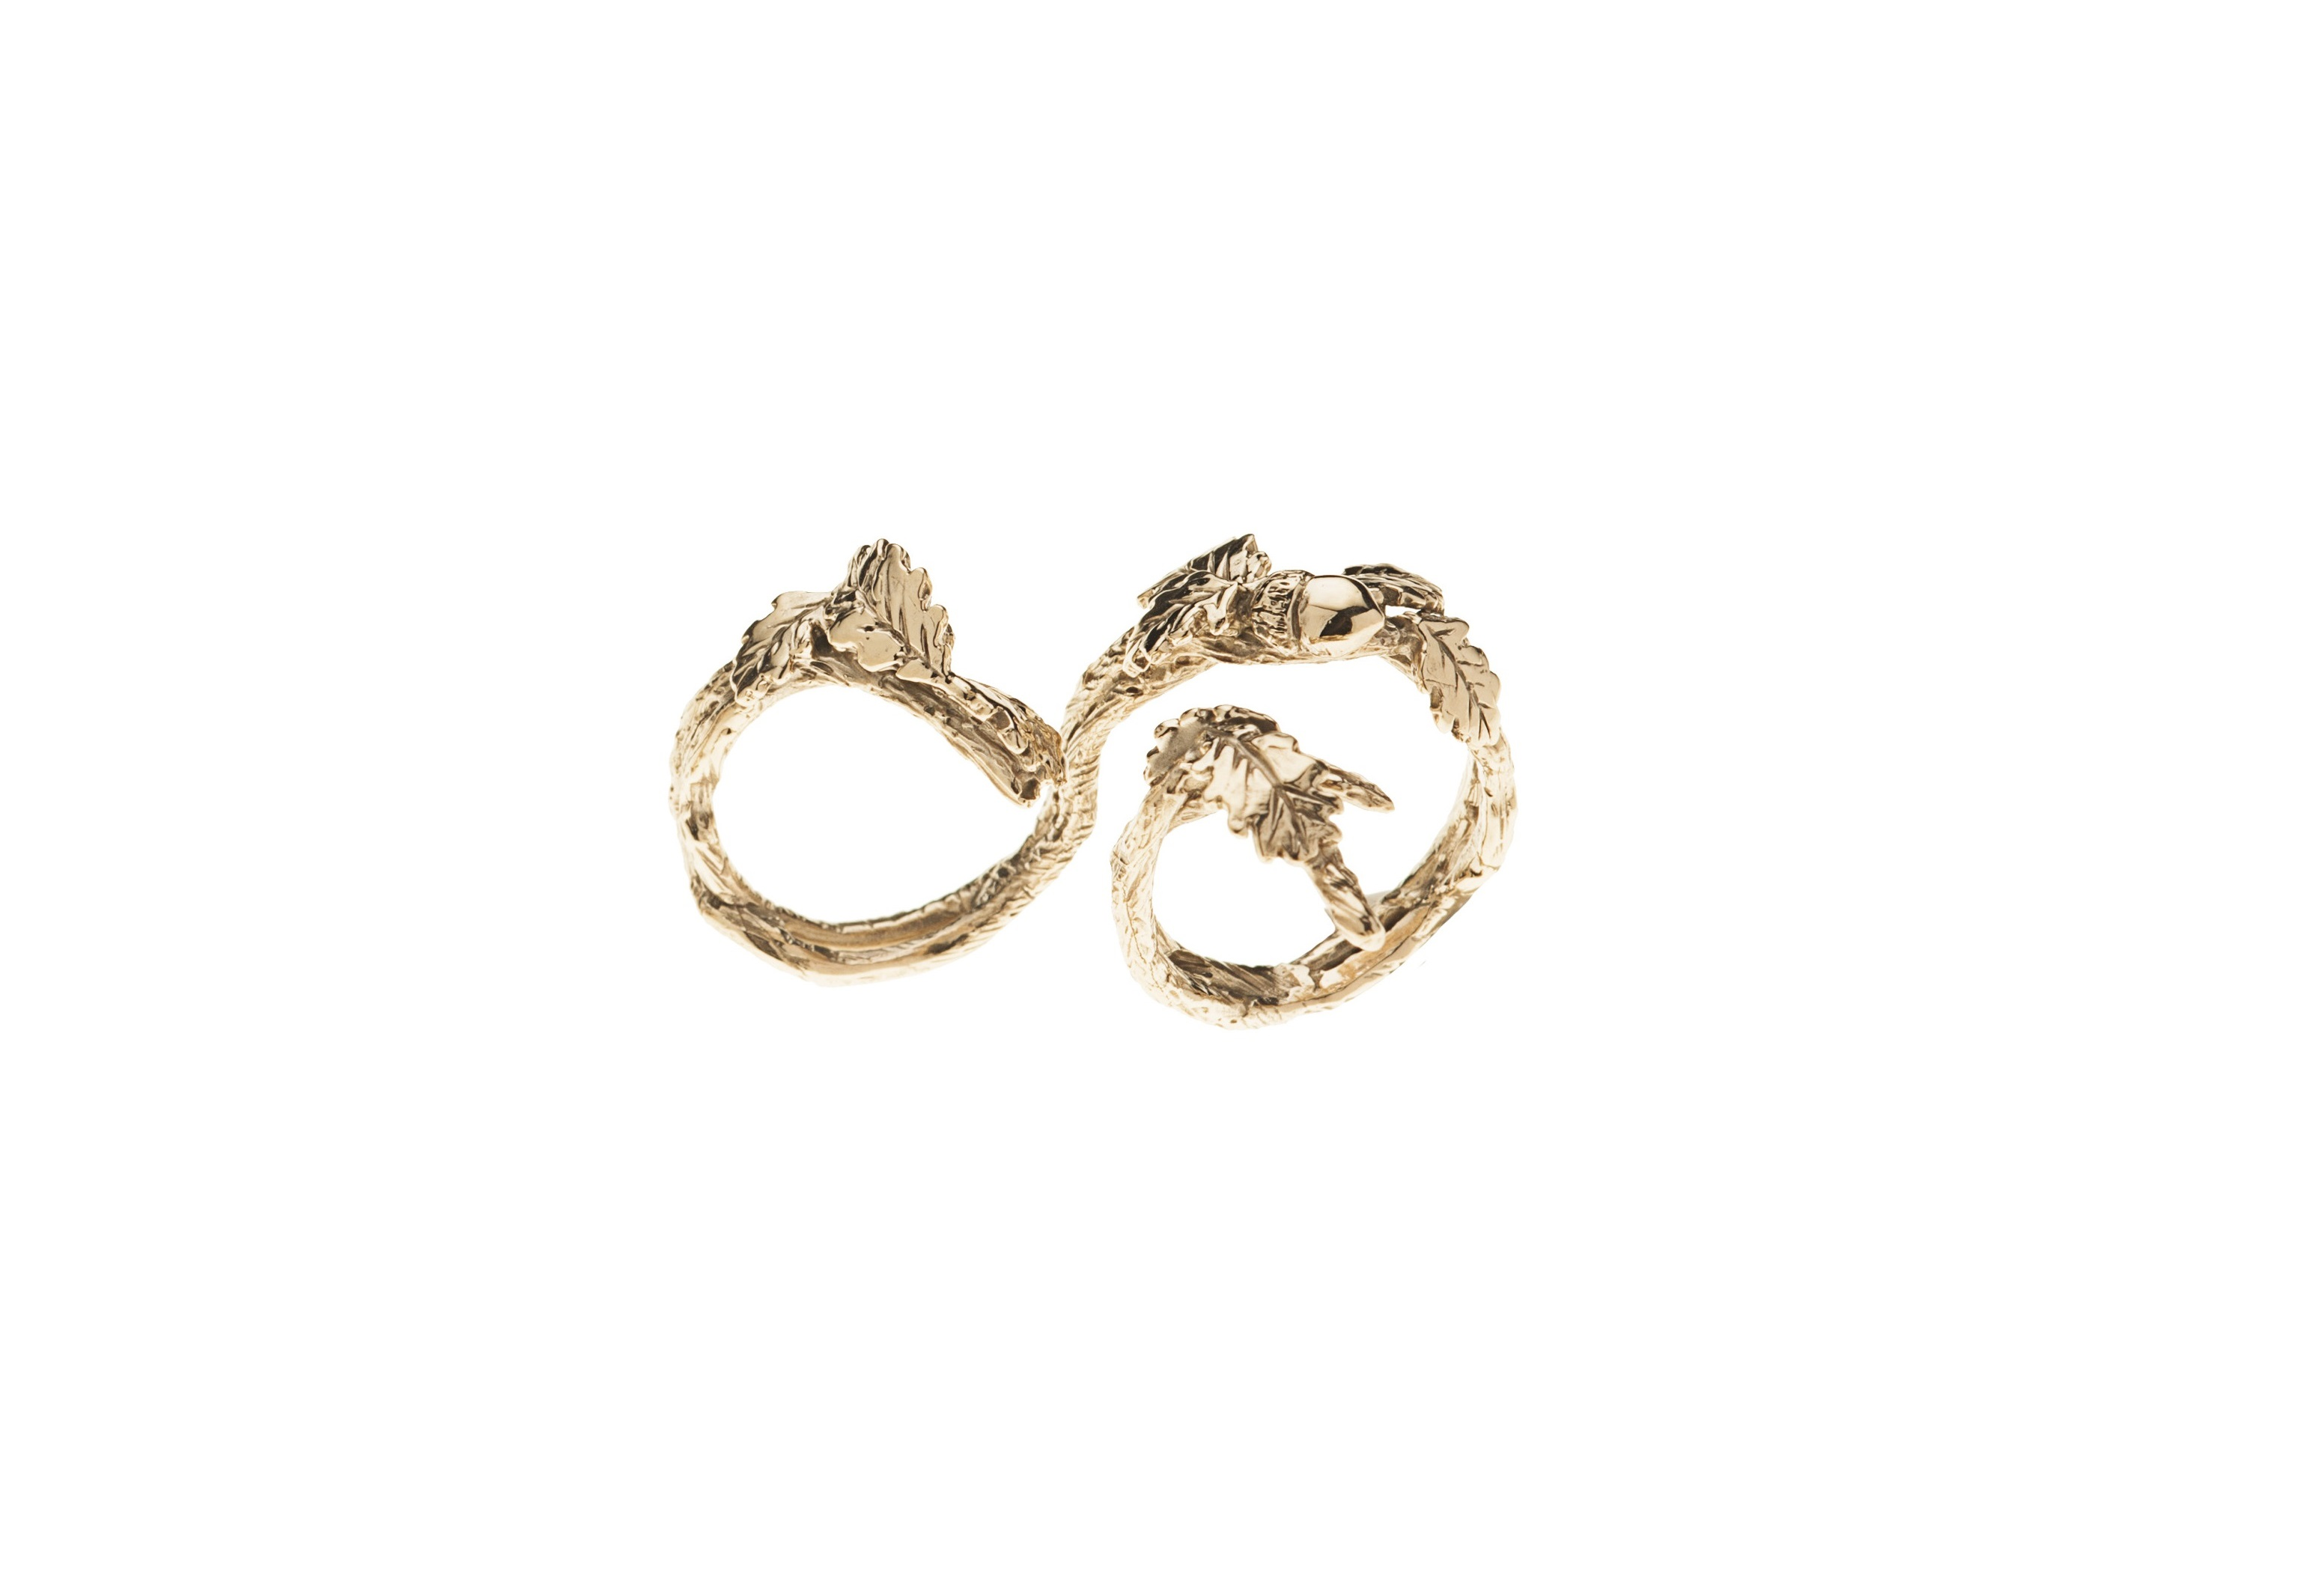 ring metallic gold jewelry lyst braided engagement in hardy normal john wrap gallery chain product rings classic bronze yellow